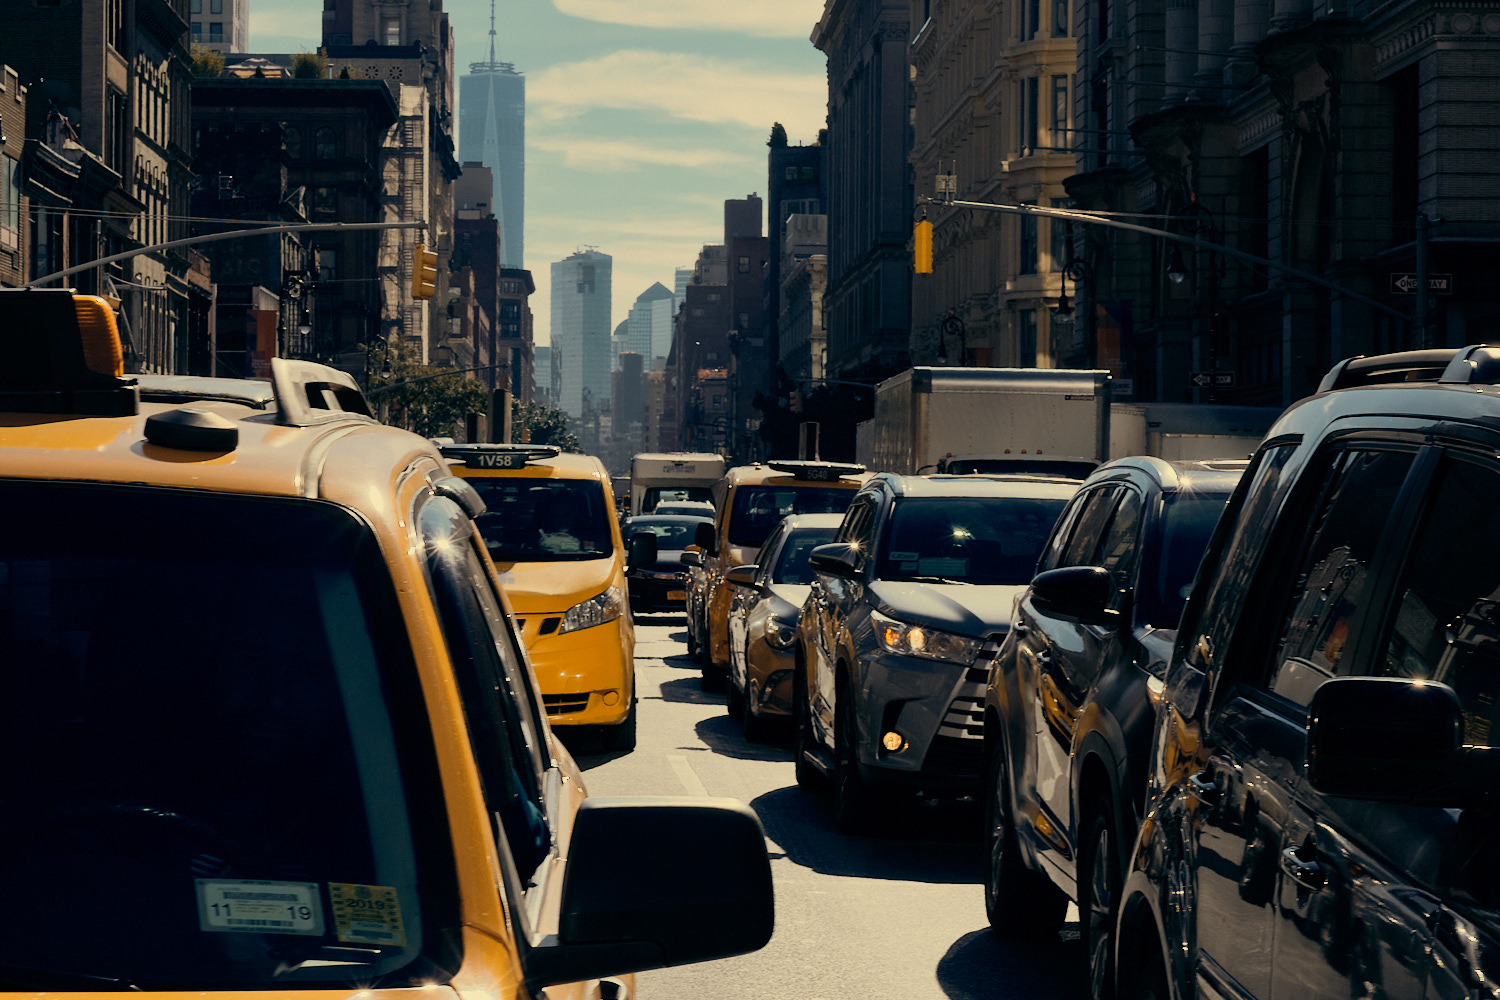 New York Styles Capture One Yellow Taxis